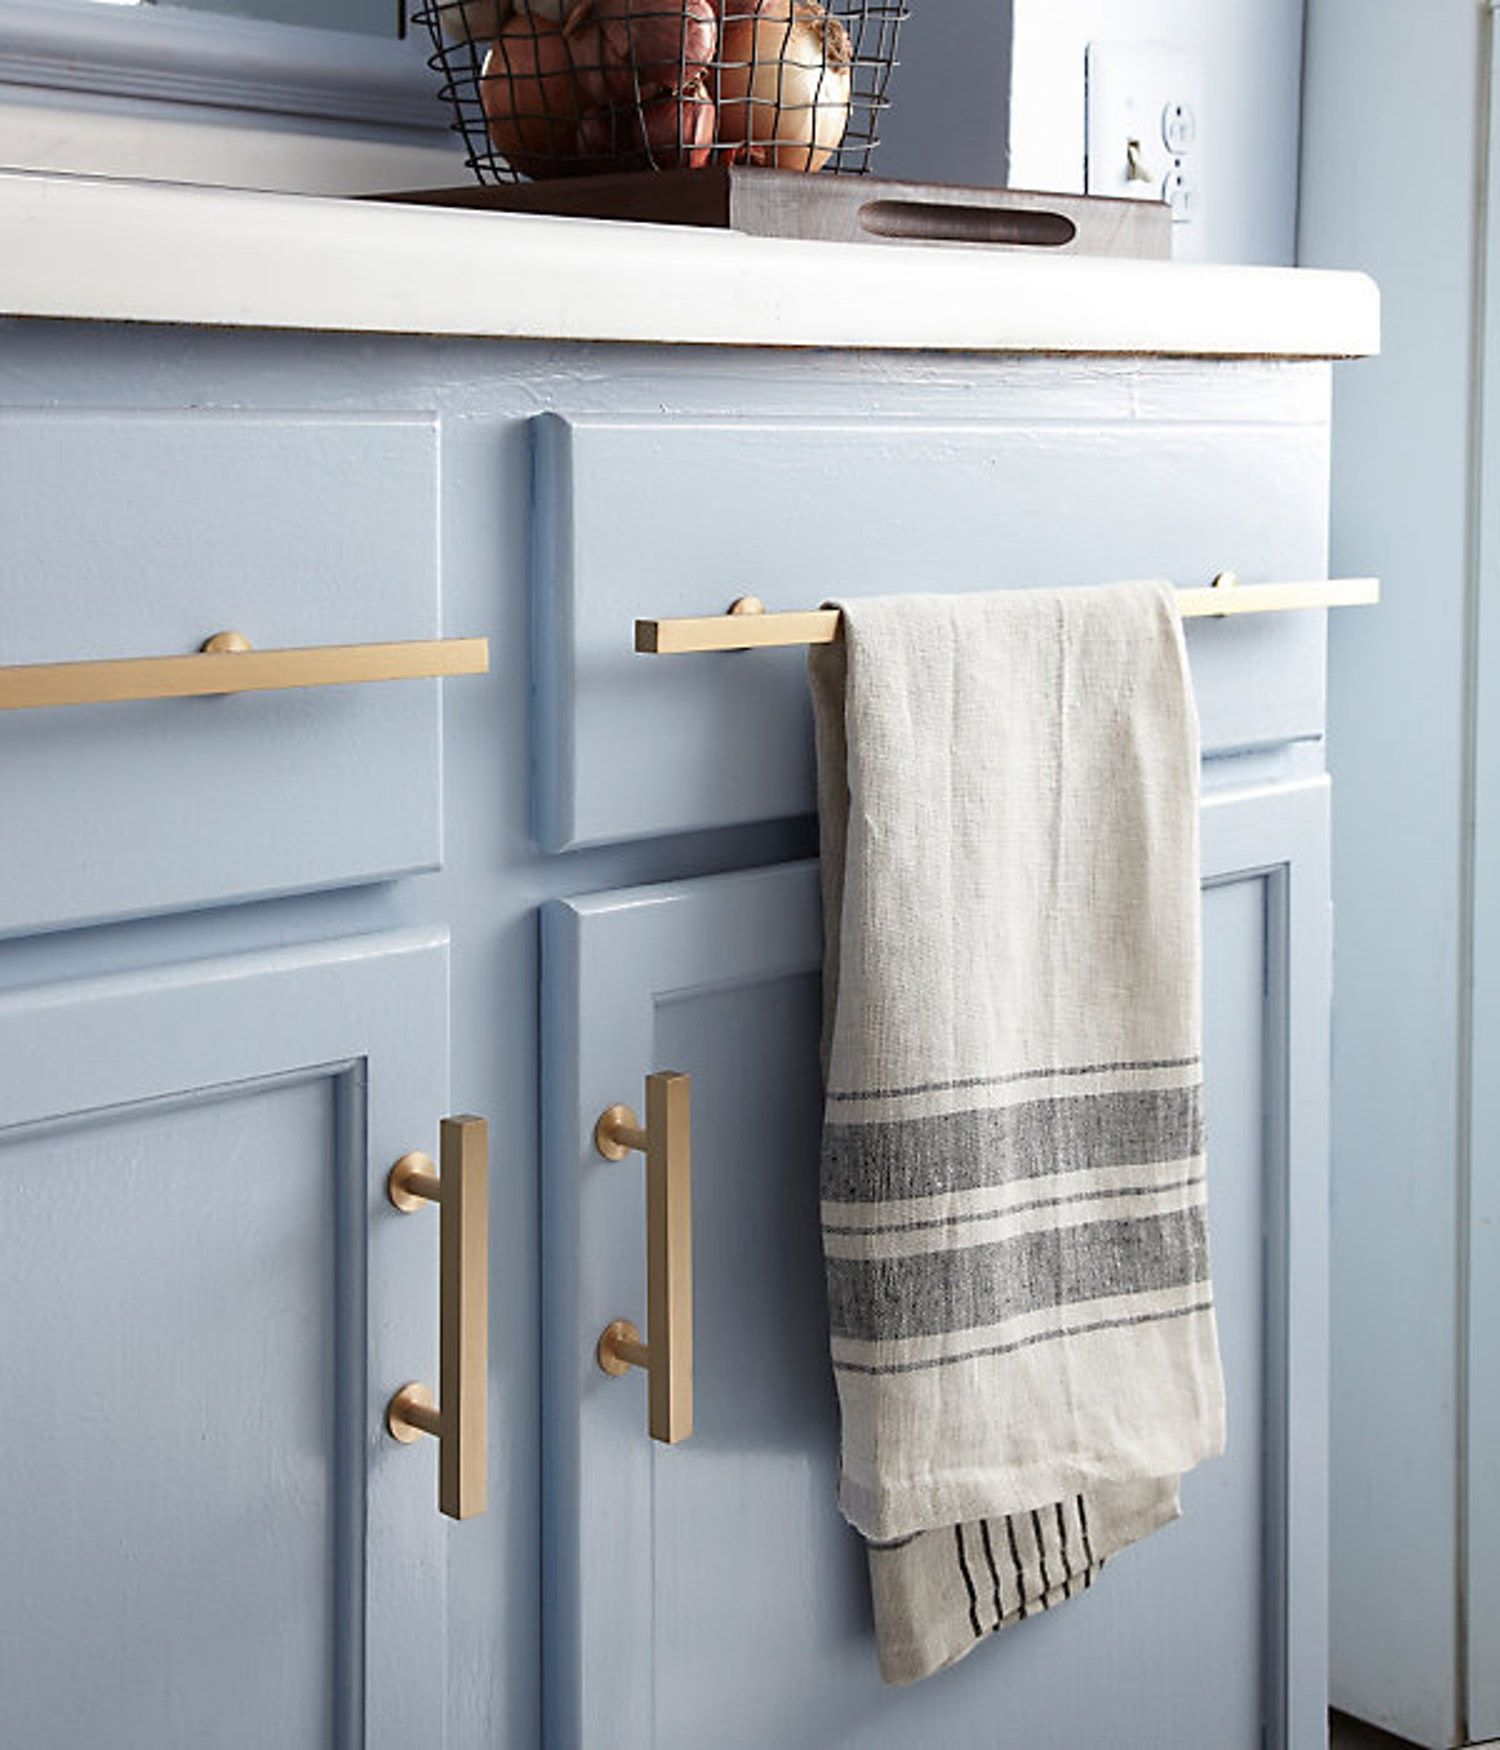 The Easiest Way To Renovate Your Kitchen: What's The Best Way To Clean Painted Kitchen Cabinet Doors